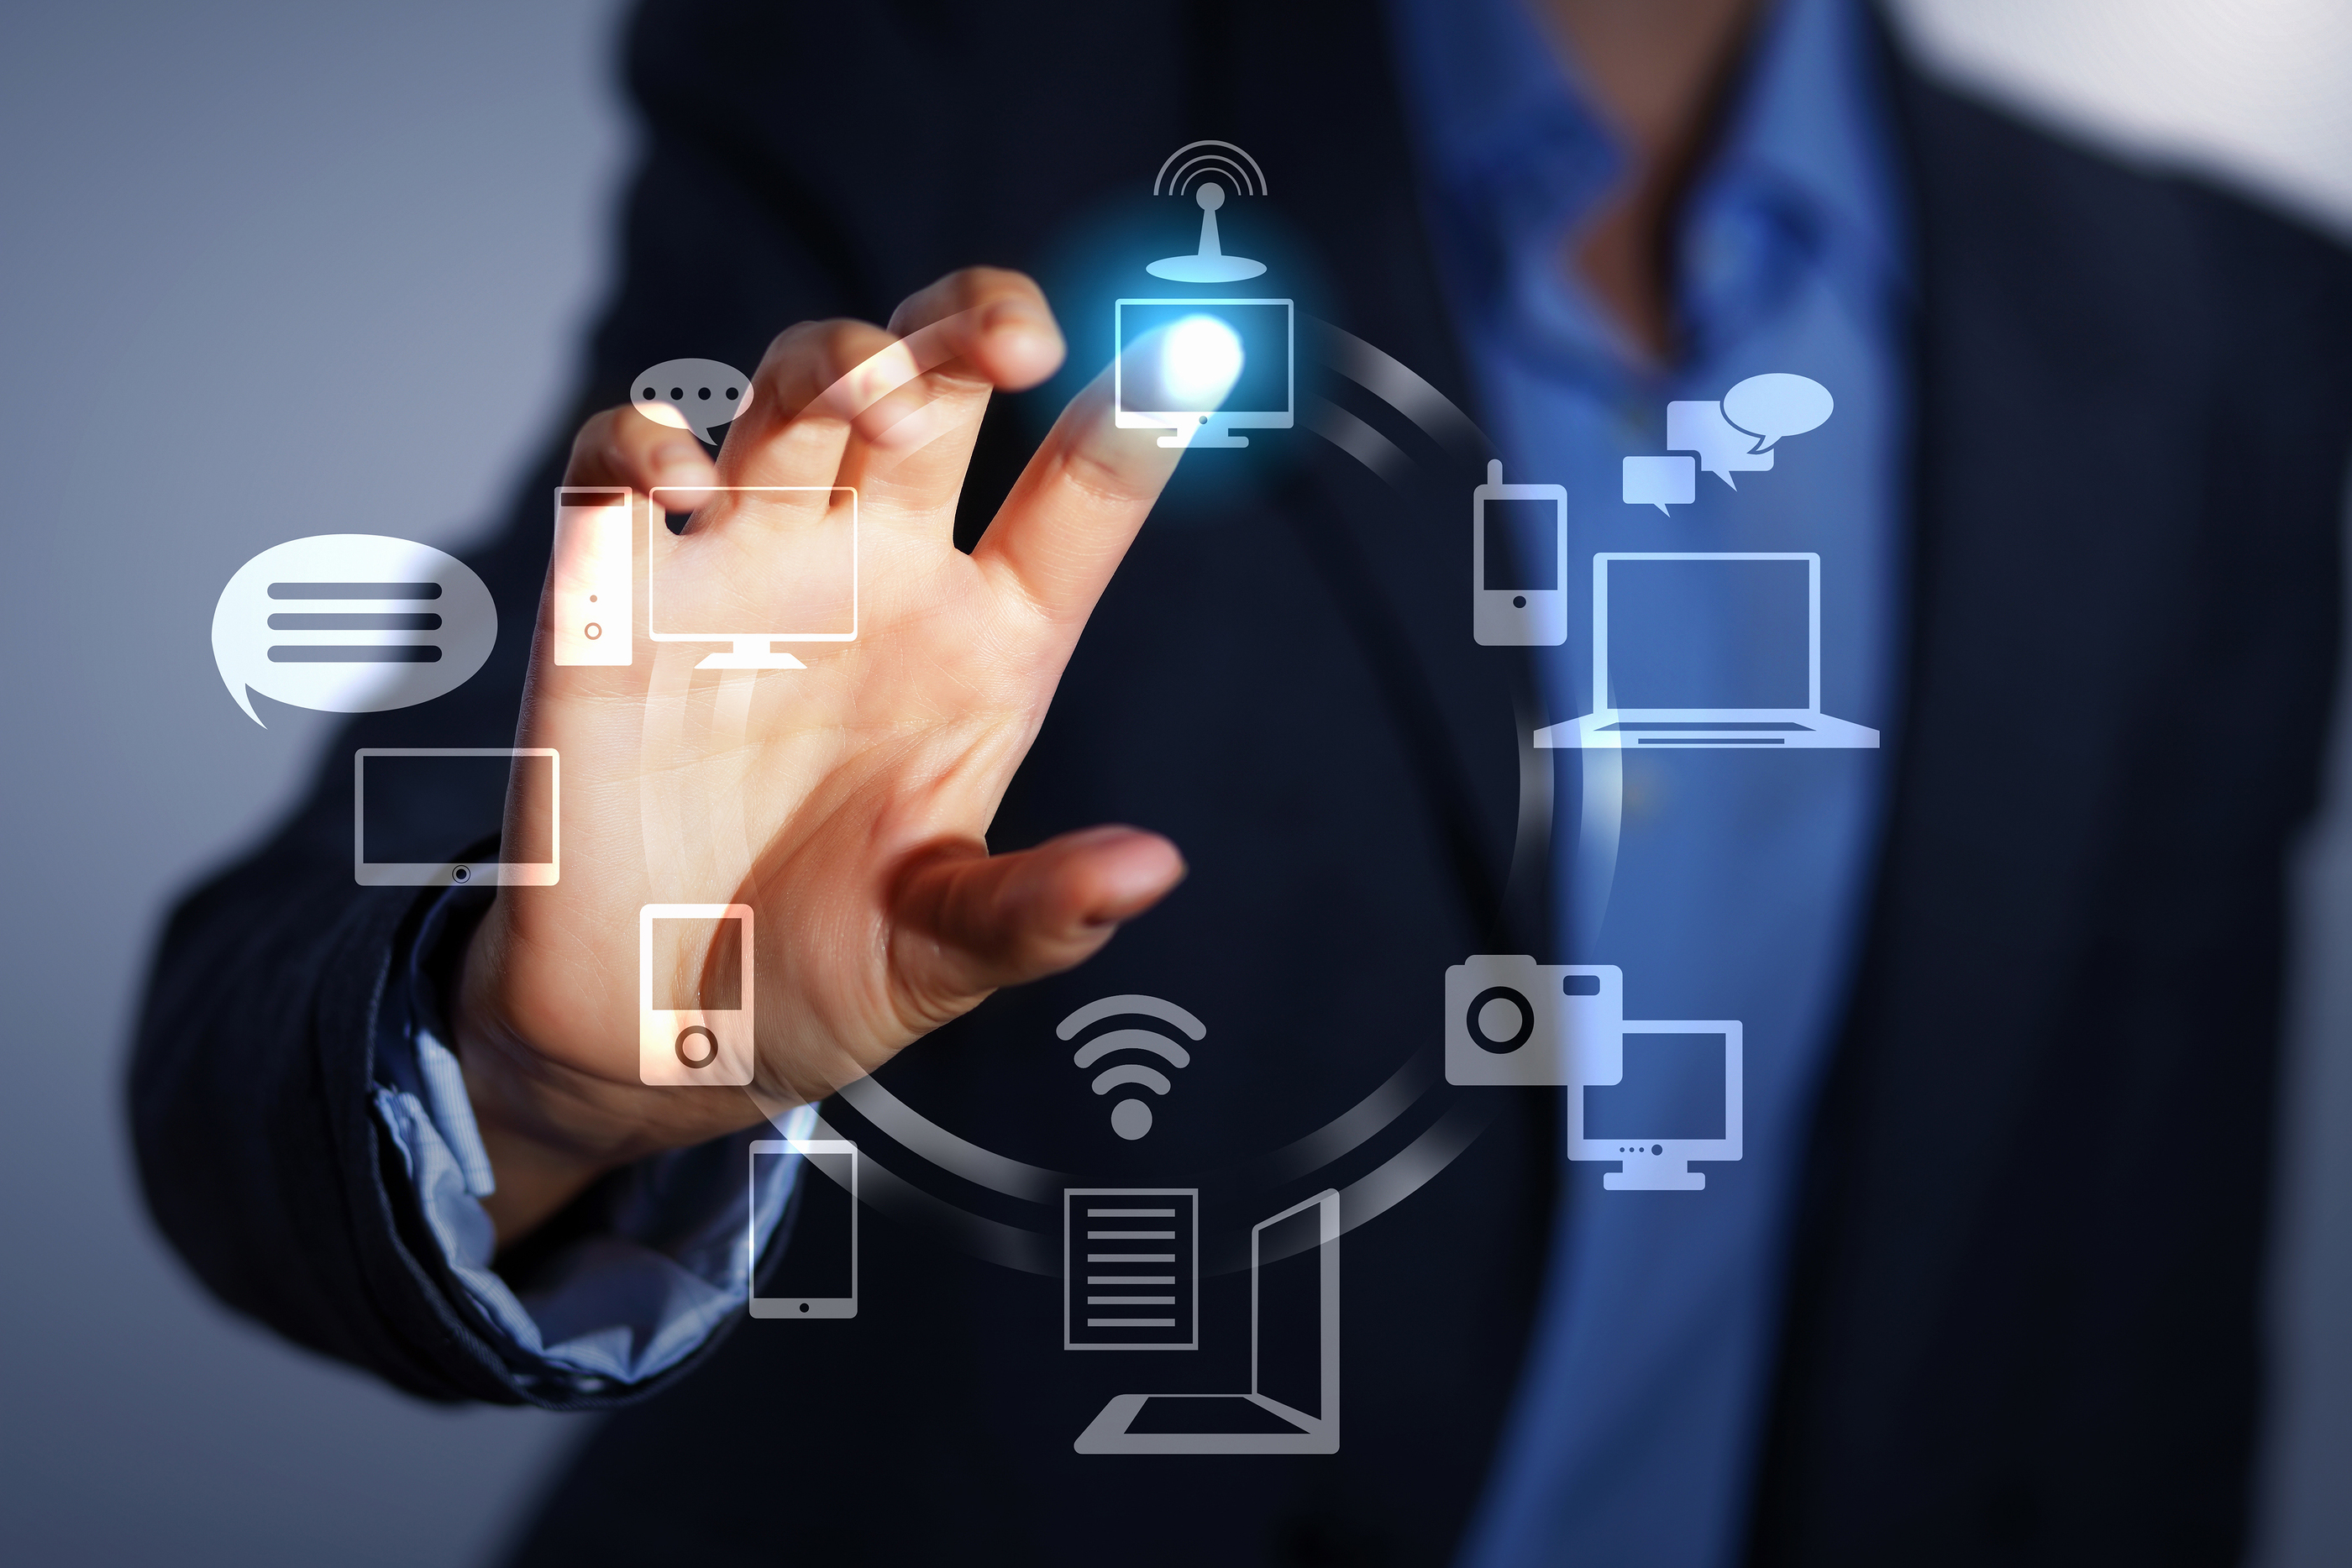 How to Choose the Right Touch Screen for Your Business - Touch Dynamic